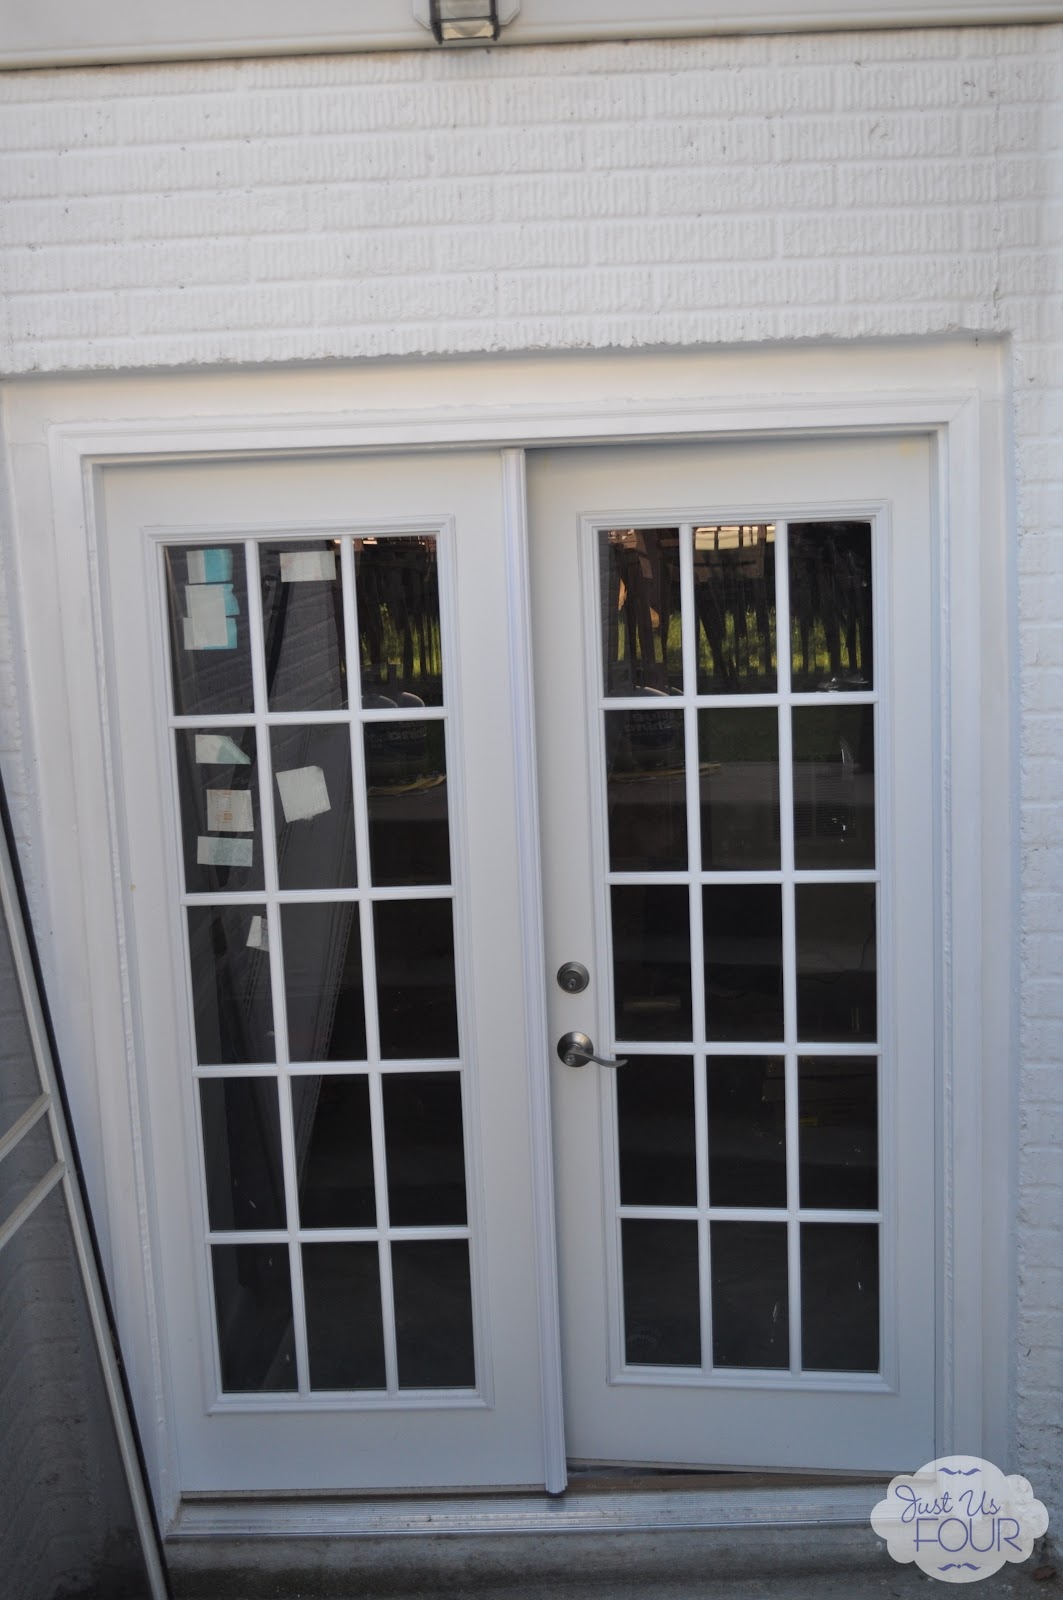 1600 #685E48 French Doors Exterior: Installing French Doors Exterior Cost save image Cost Of Exterior Doors 39671063